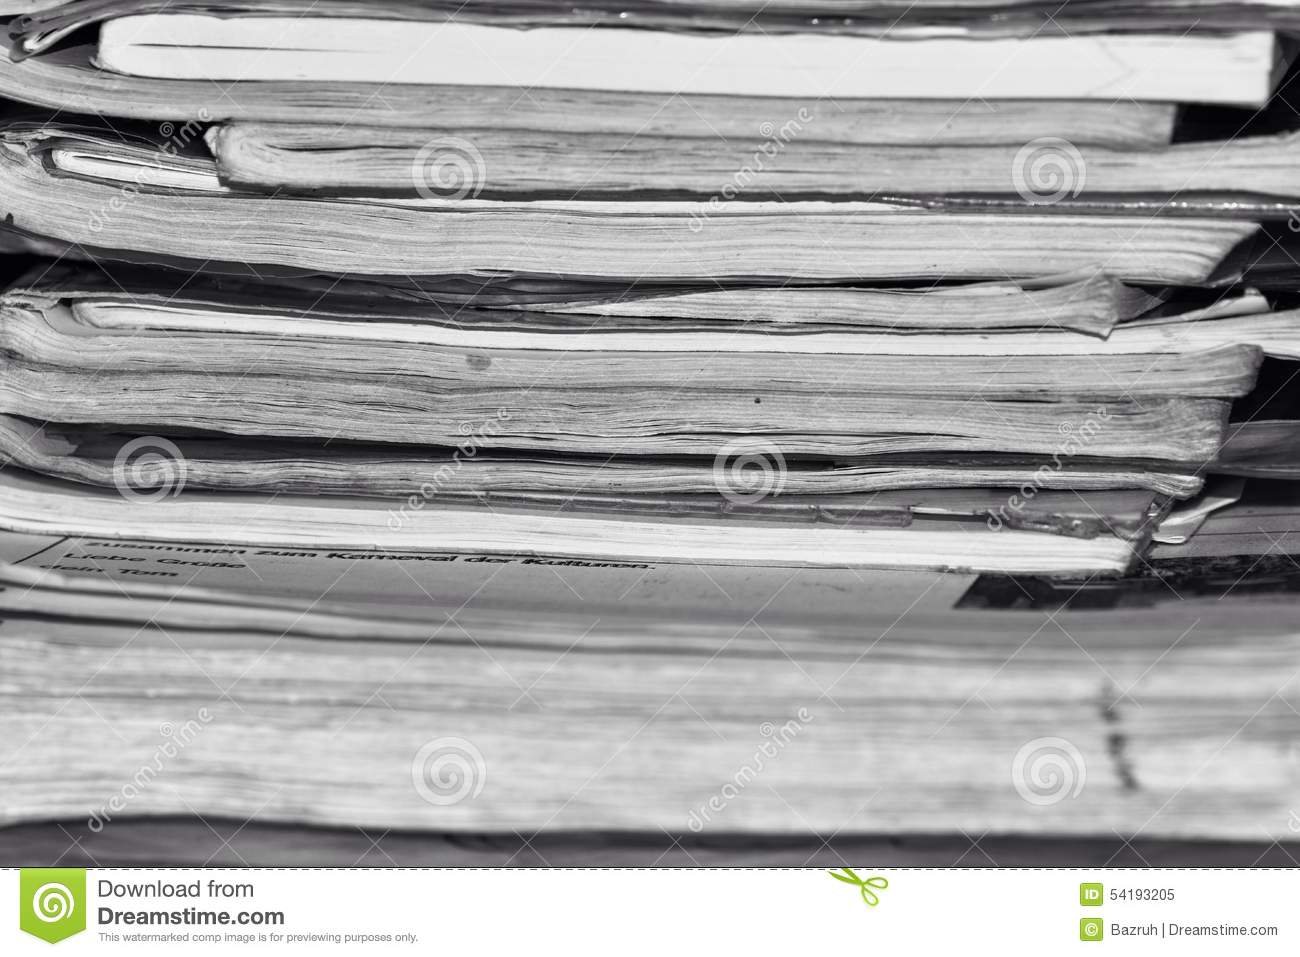 Pile of old notebooks, black and white photo